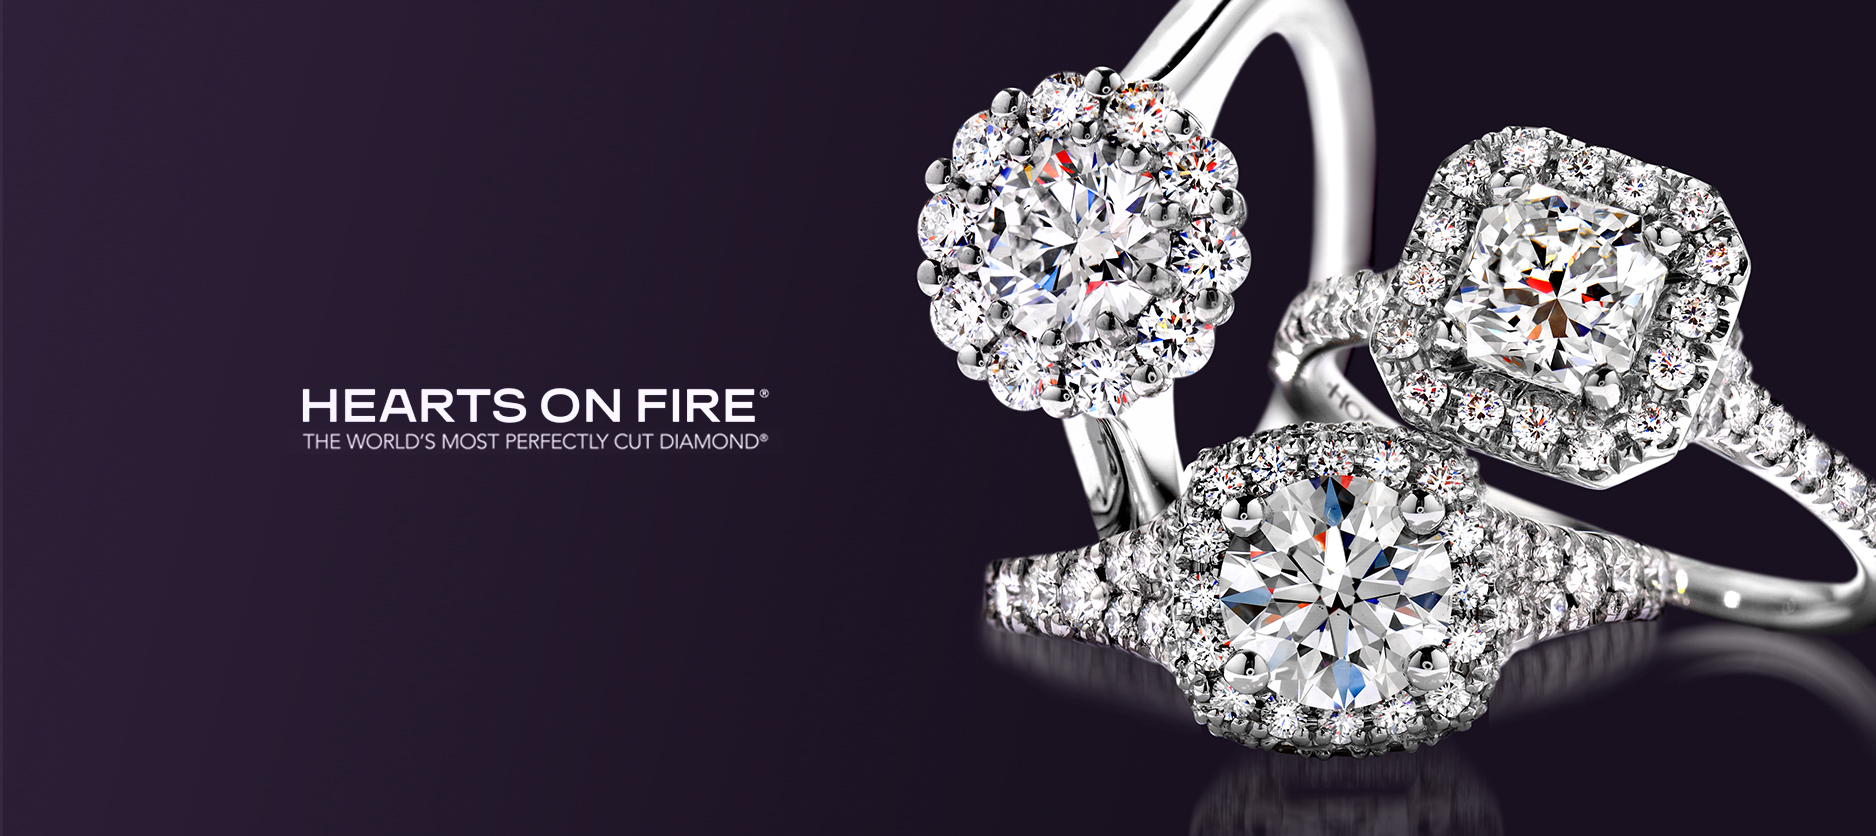 Hearts on Fire at Williams Jewelers of Denver, Colorado